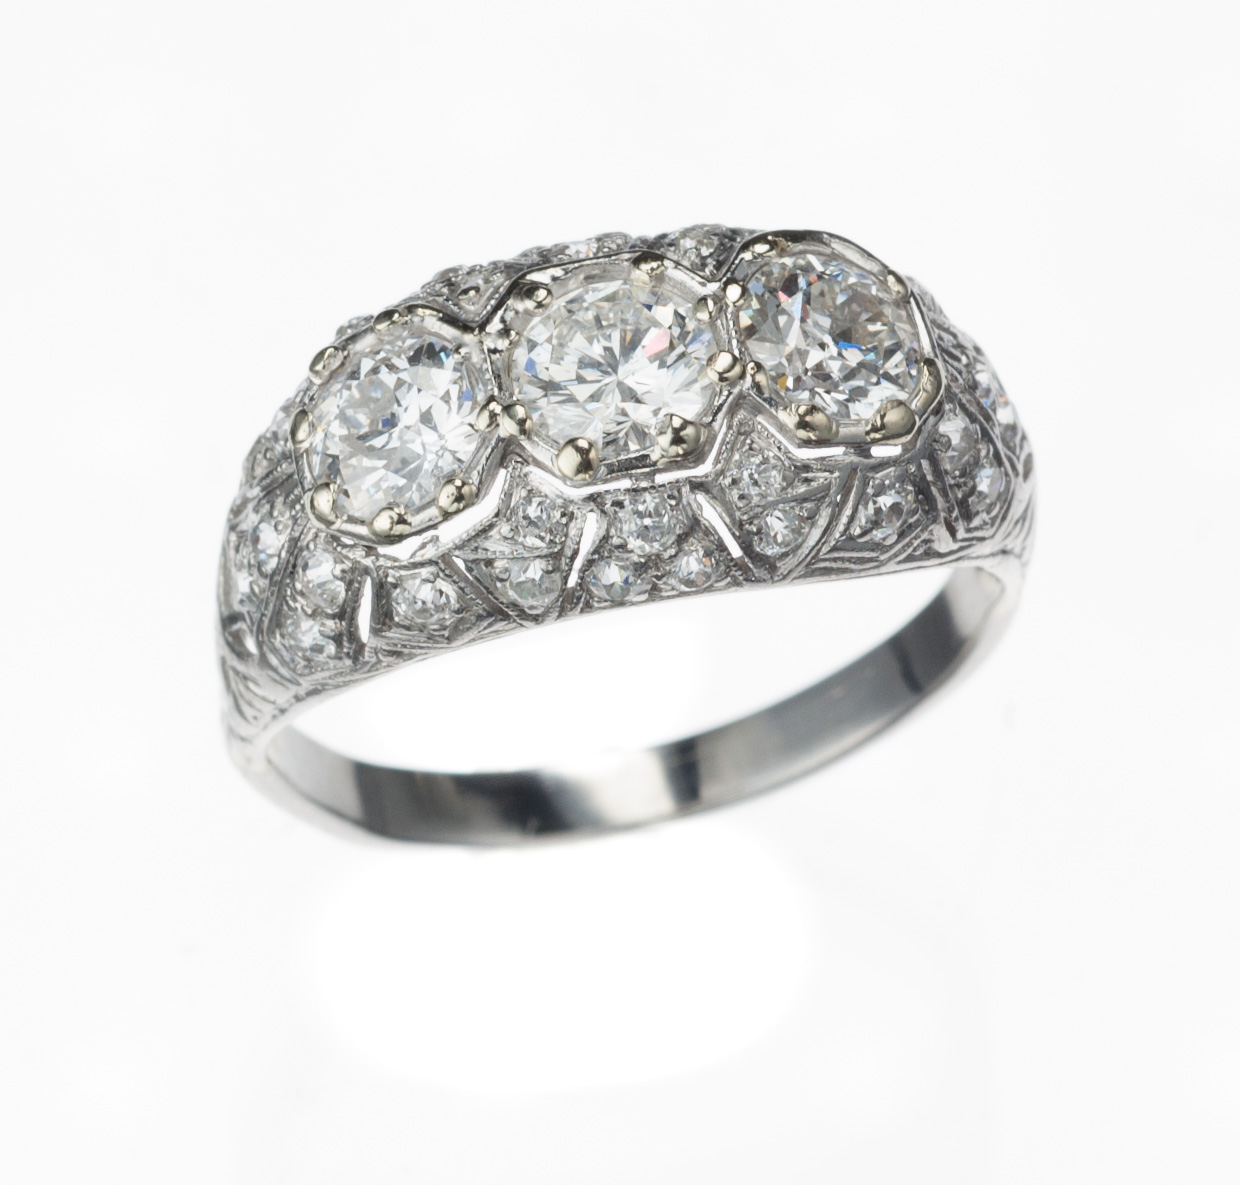 Platinum & 18kt Estate Diamond Ring